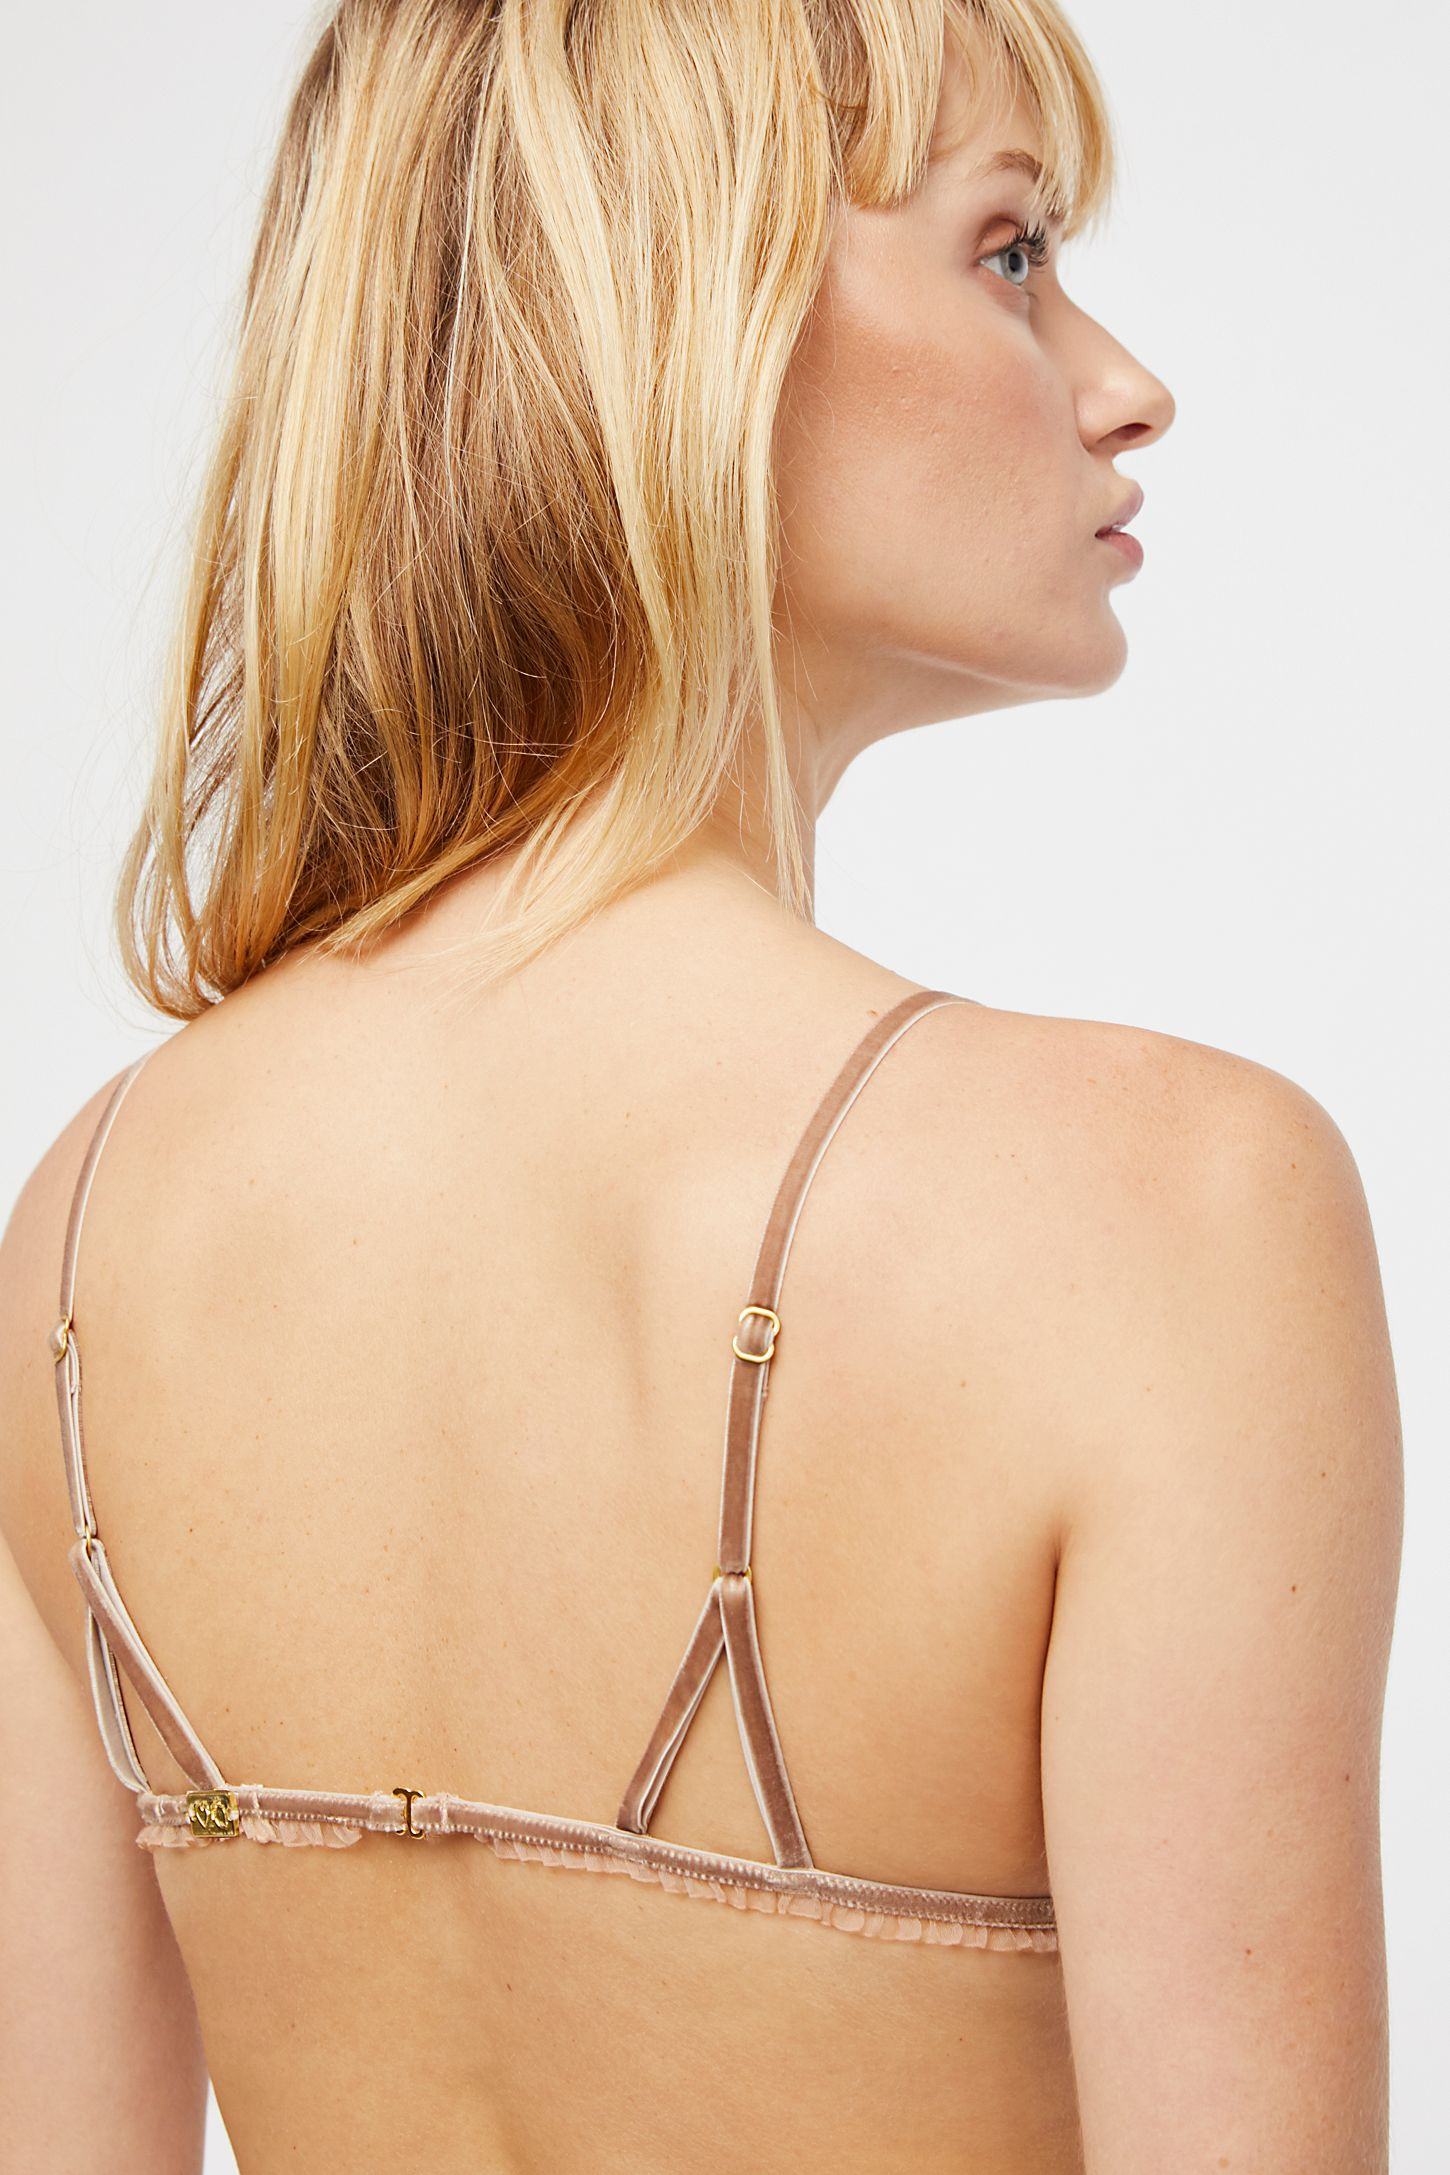 5767a3a1c98e0 Slide View 3: Golden Garden Bralette